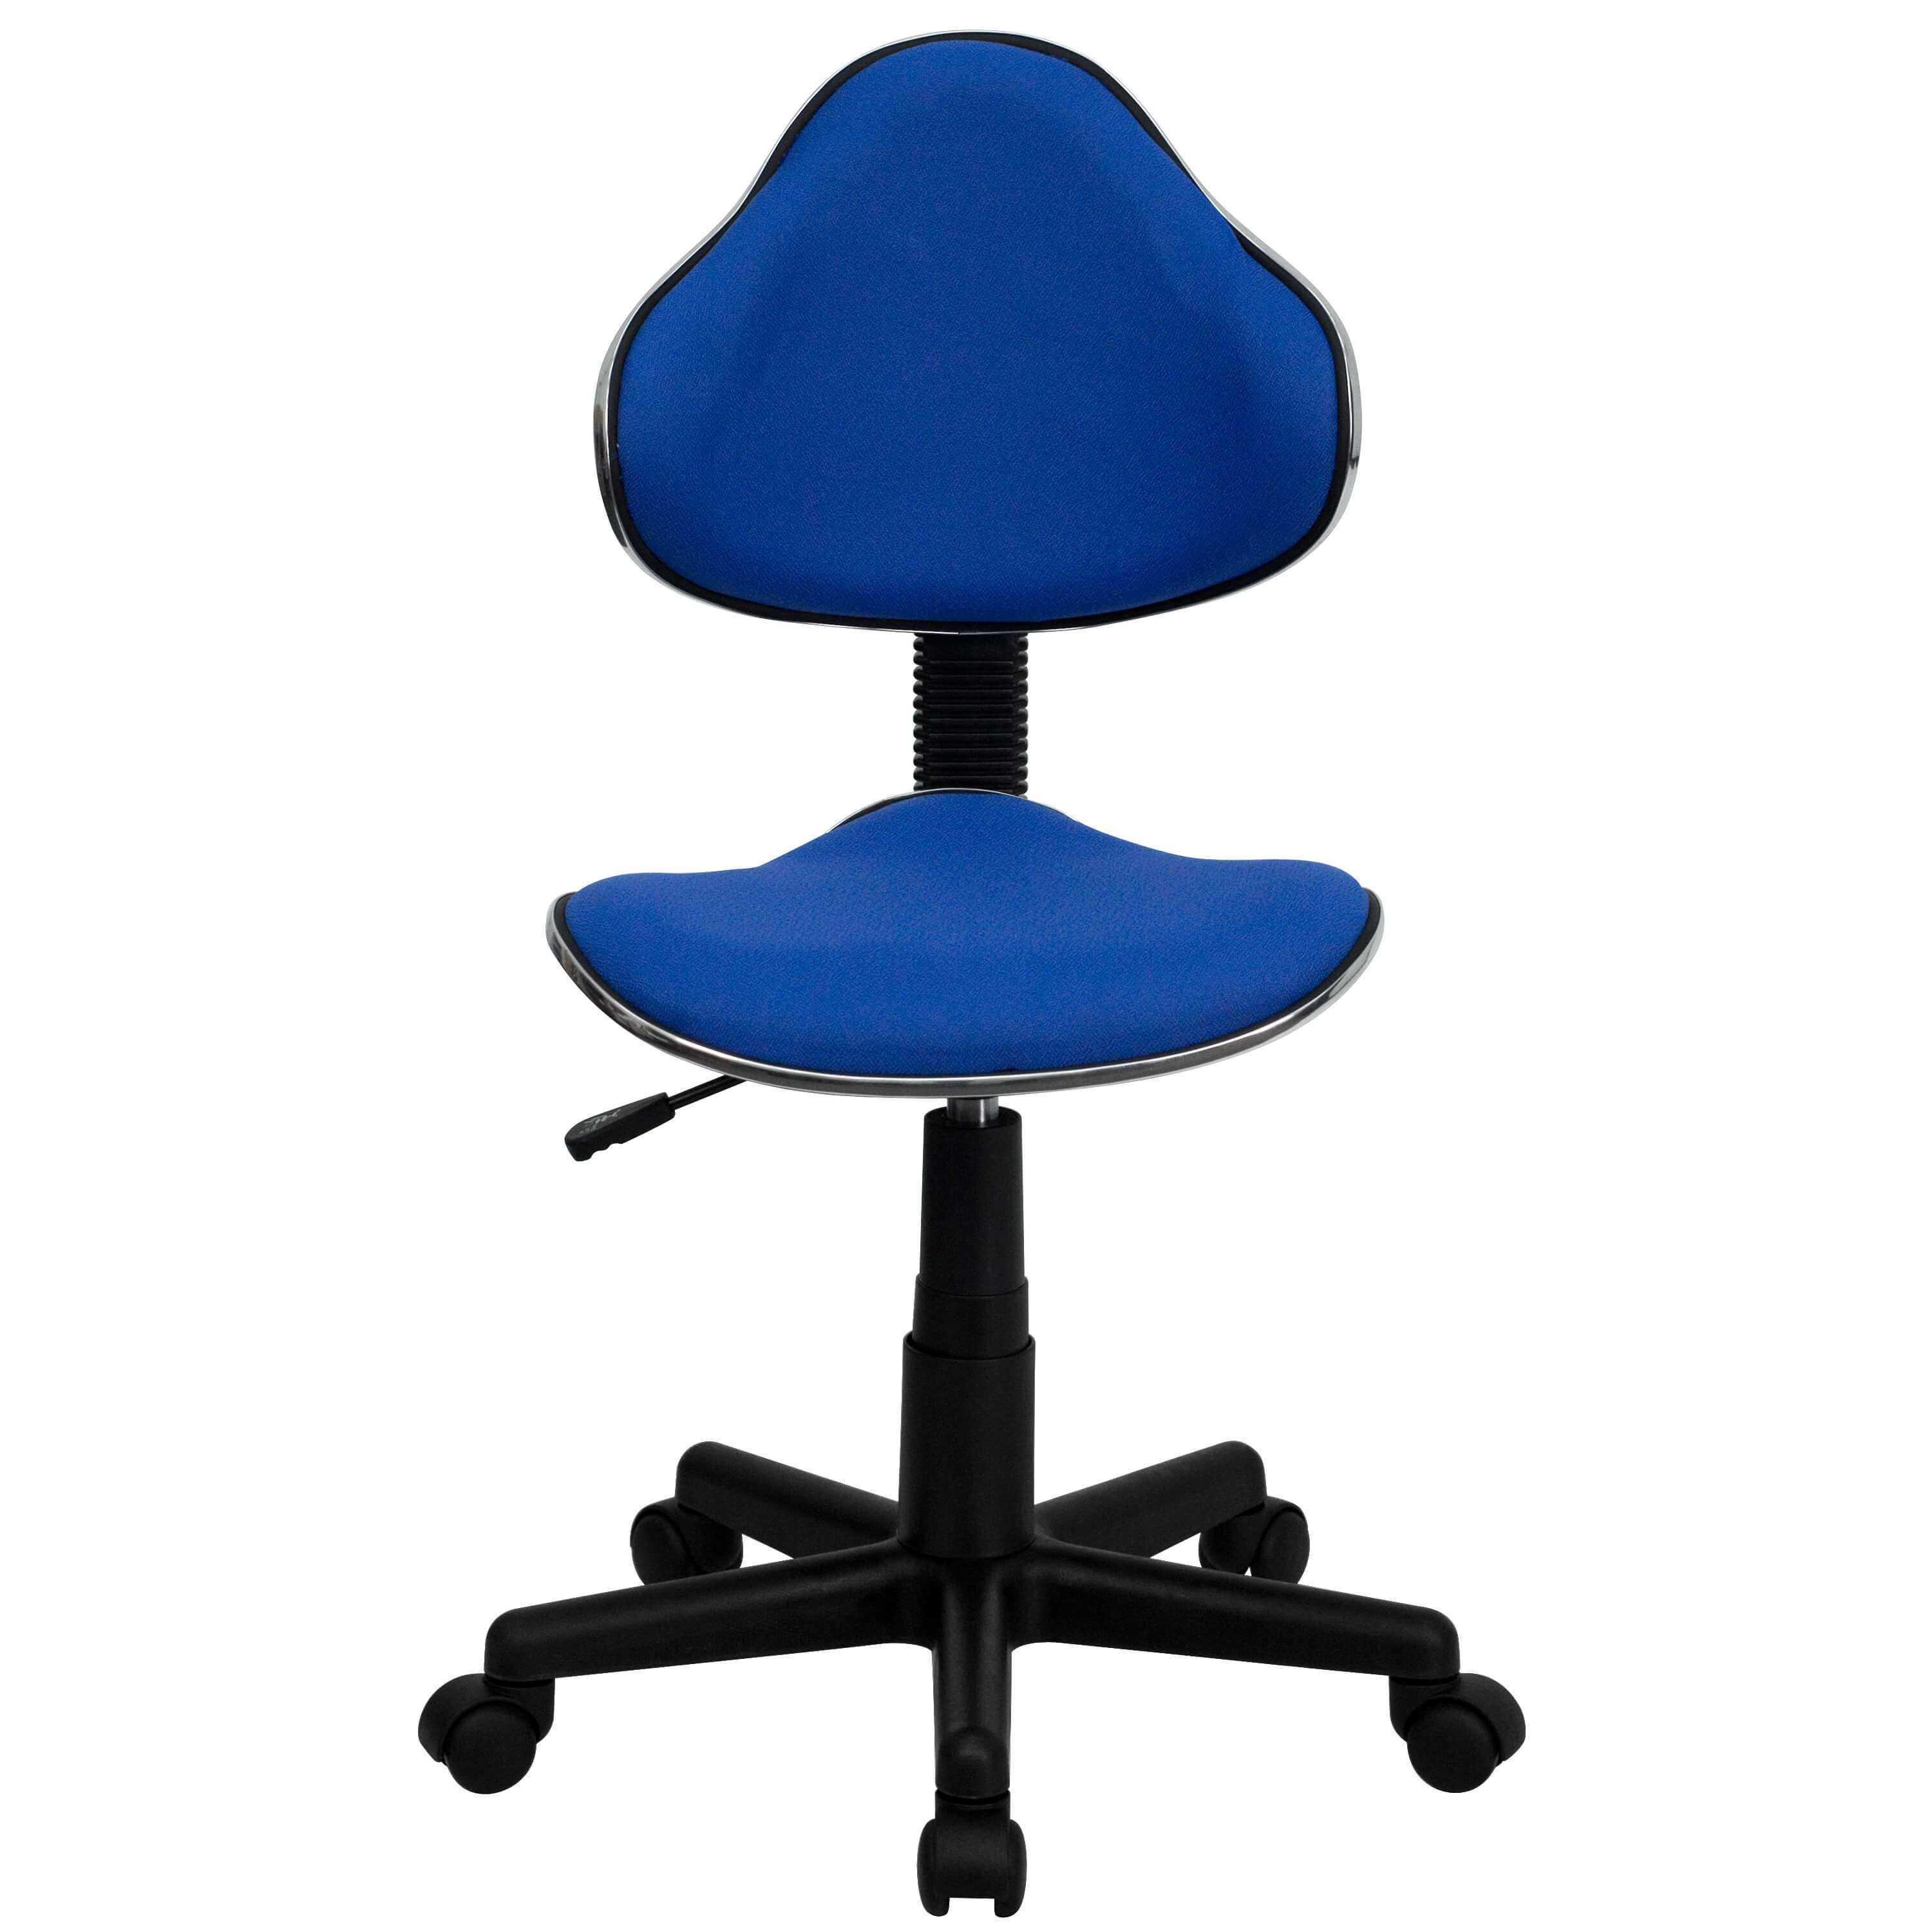 Colorful desk chairs CUB BT 699 BLUE GG FLA